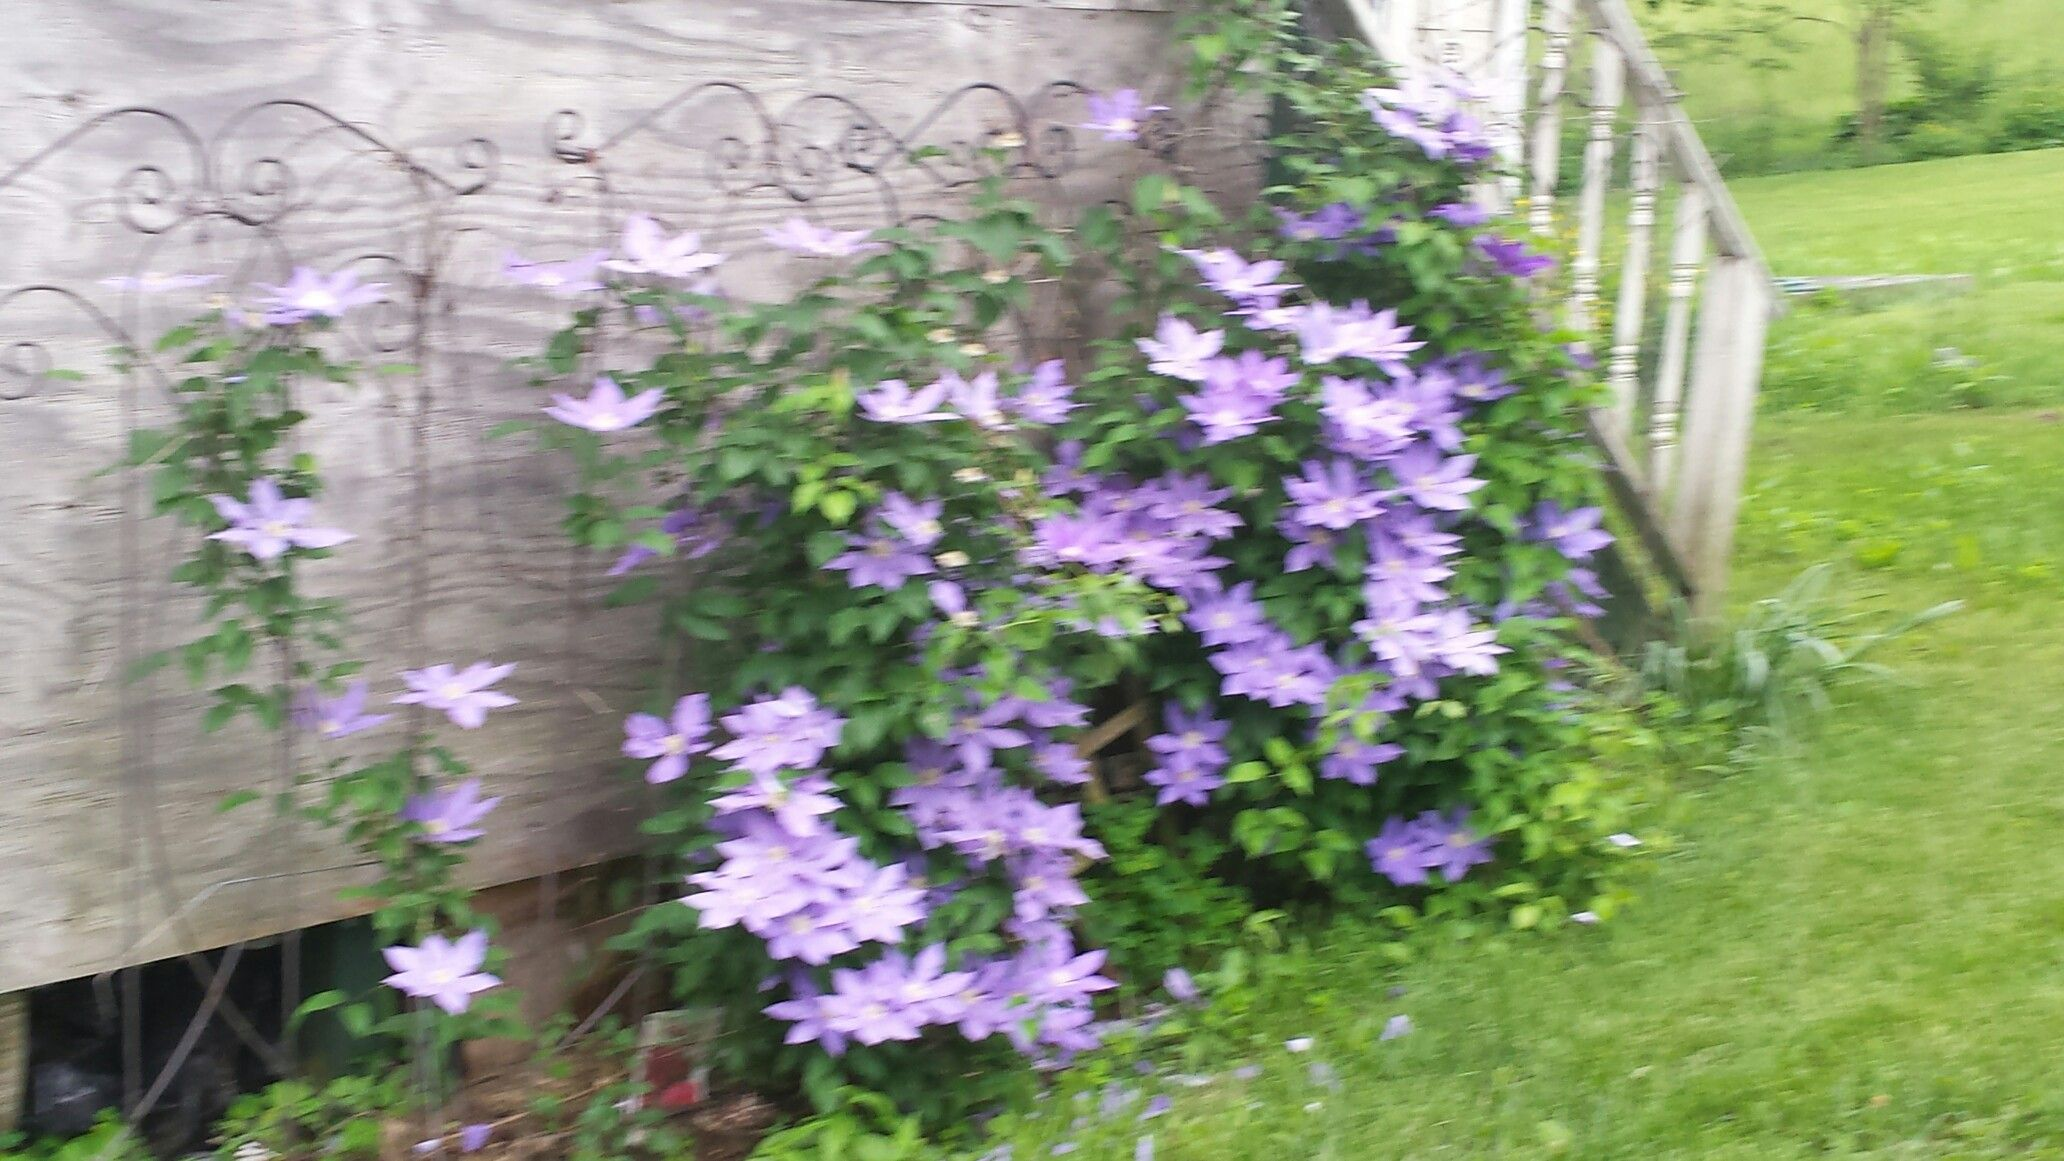 My clematis from spring 2015